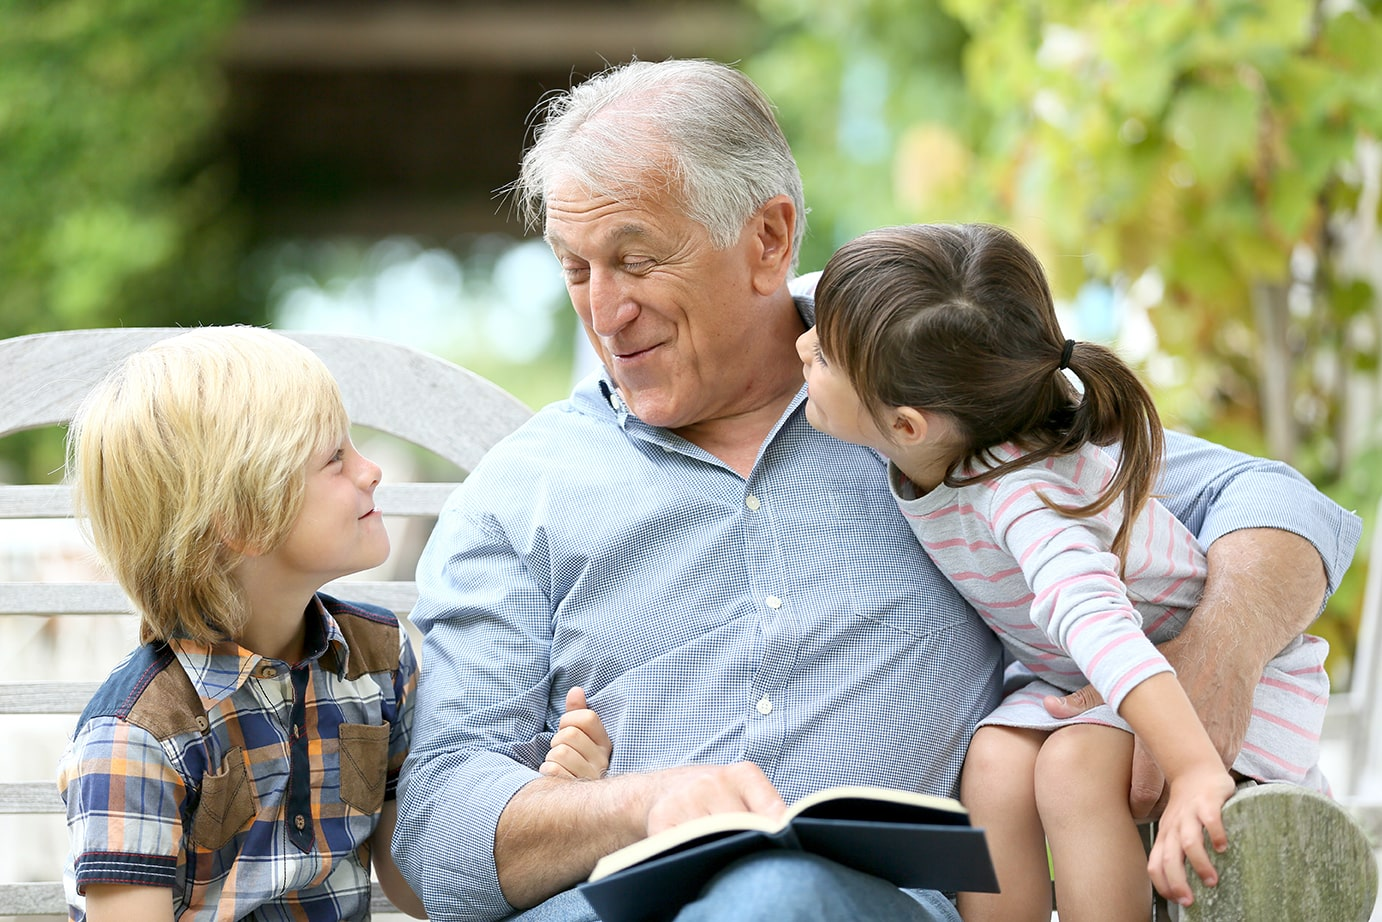 grandfather spending quality time with grandchildren